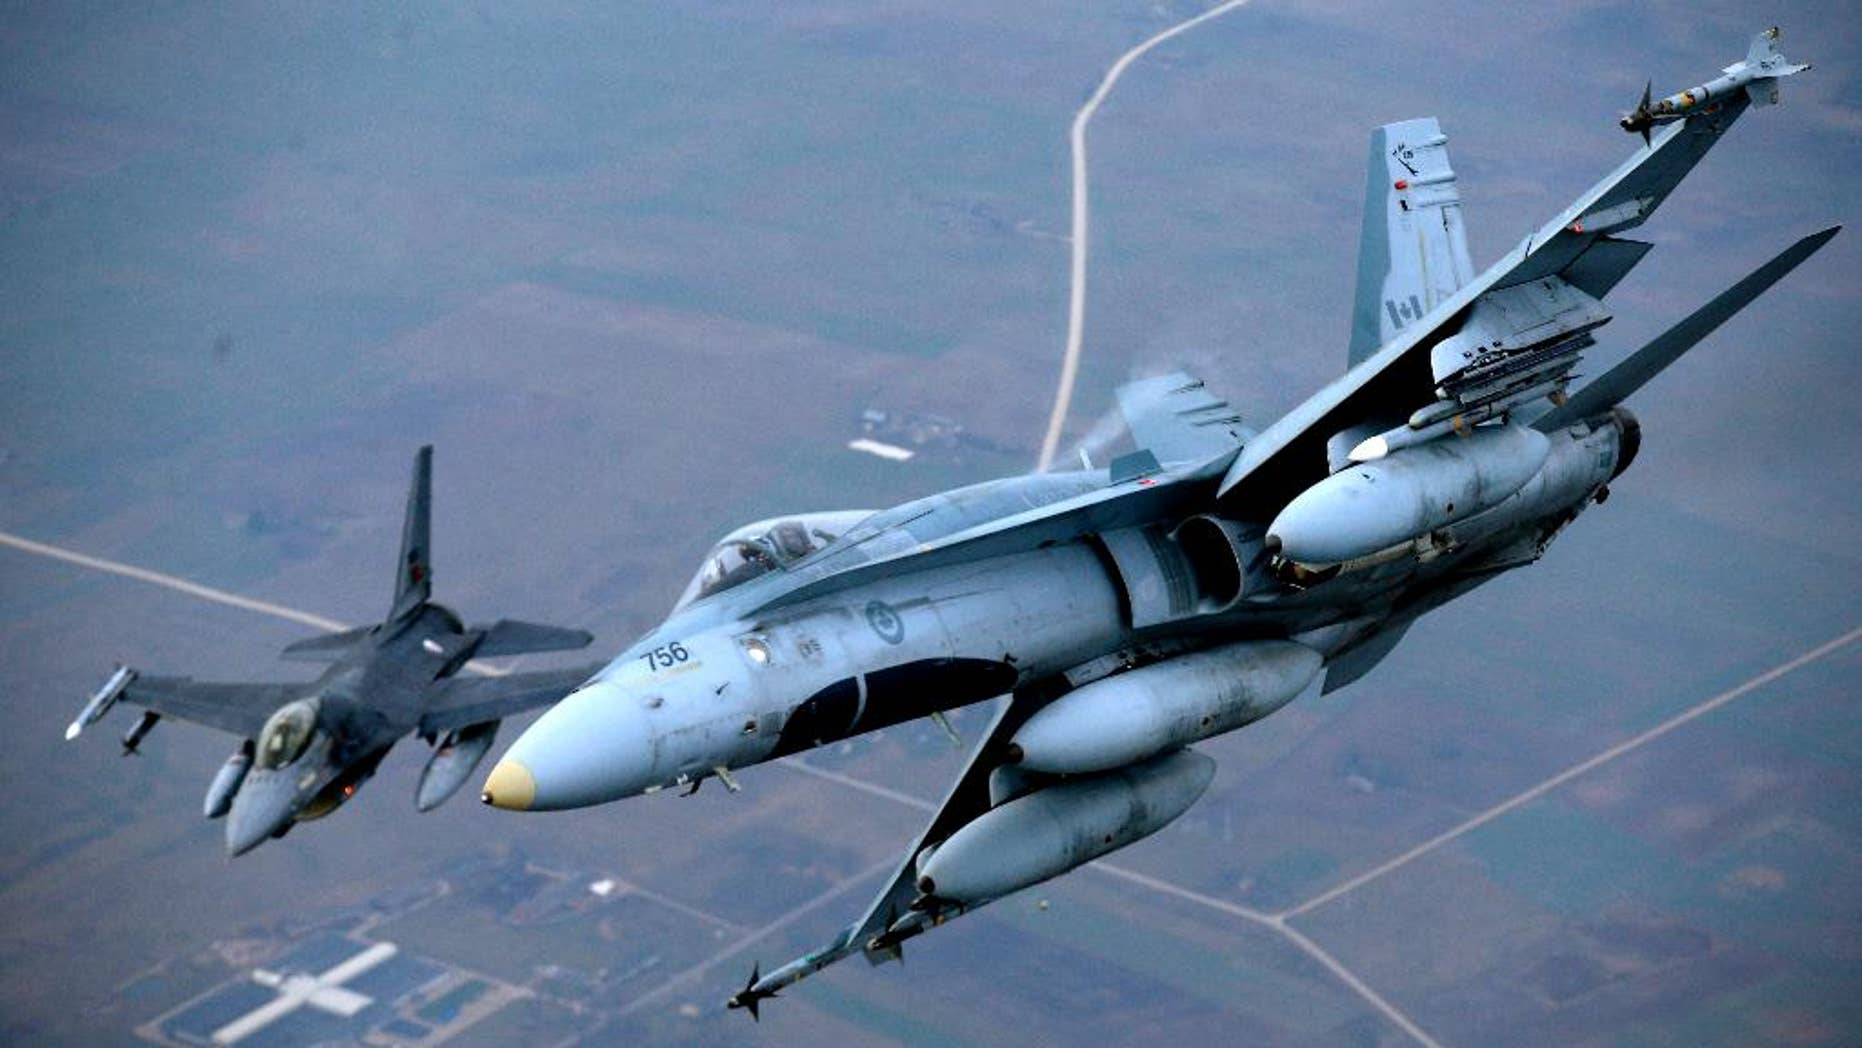 "A Portuguese military fighter jet, left, and a Canadian military fighter jet participating in NATO's Baltic Air Policing Mission operate in Lithuanian airspace, Thursday, Nov. 20, 2014. NATO, which has 16 fighter jets in the region monitoring Baltic airspace, said it regularly launches jets to identify ""unknown or potentially hostile aircraft"" in the proximity of national airspace. (AP Photo/Mindaugas Kulbis)"